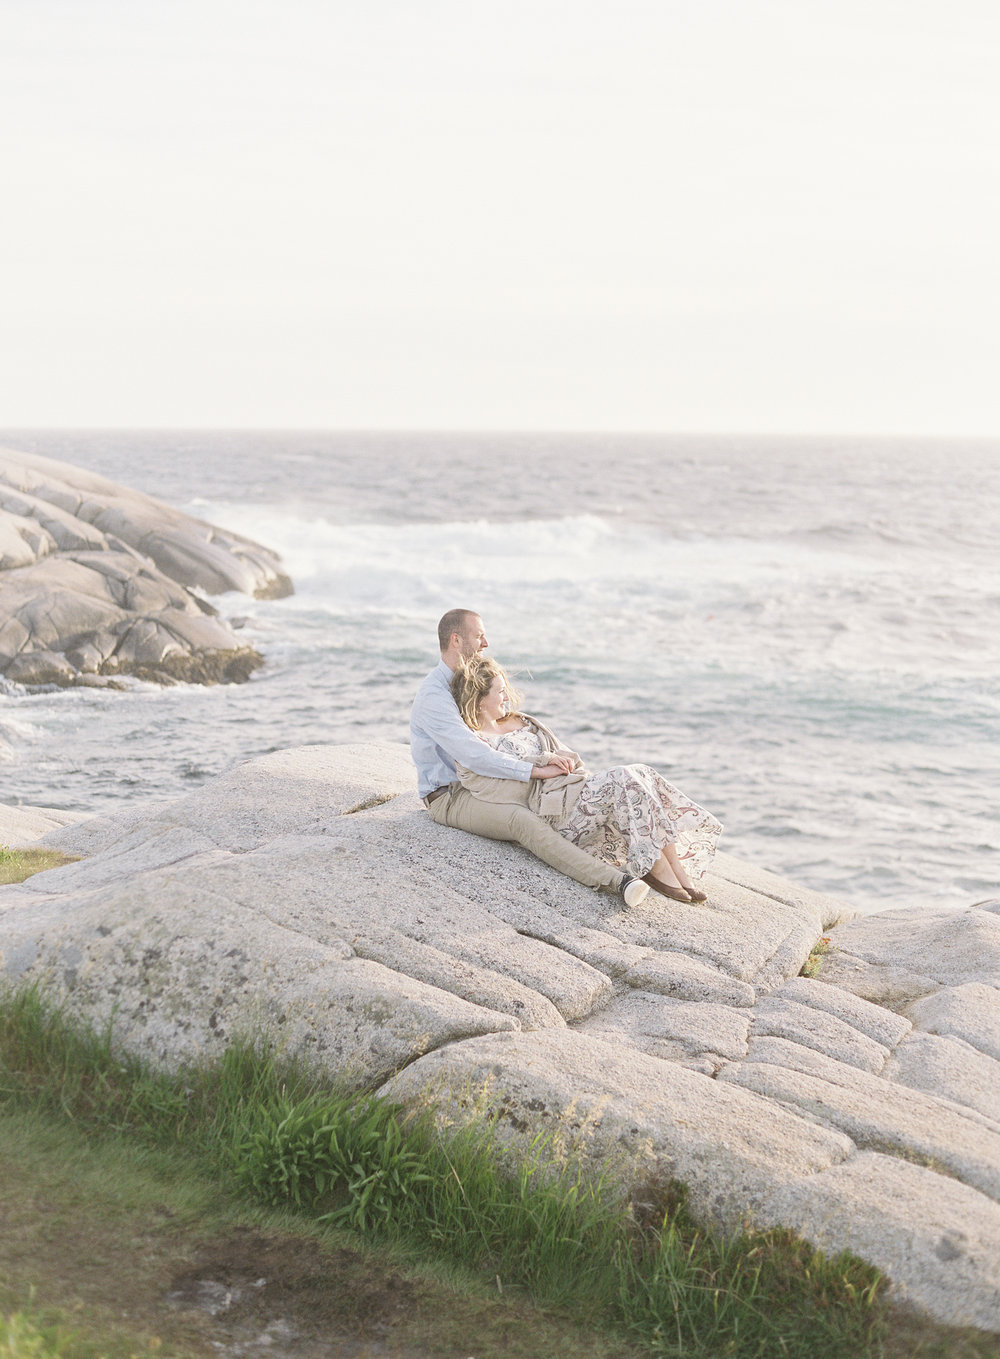 Jacqueline Anne Photography - Alex and Andrew Engagement at Peggy's Cove - Halifax-123.jpg